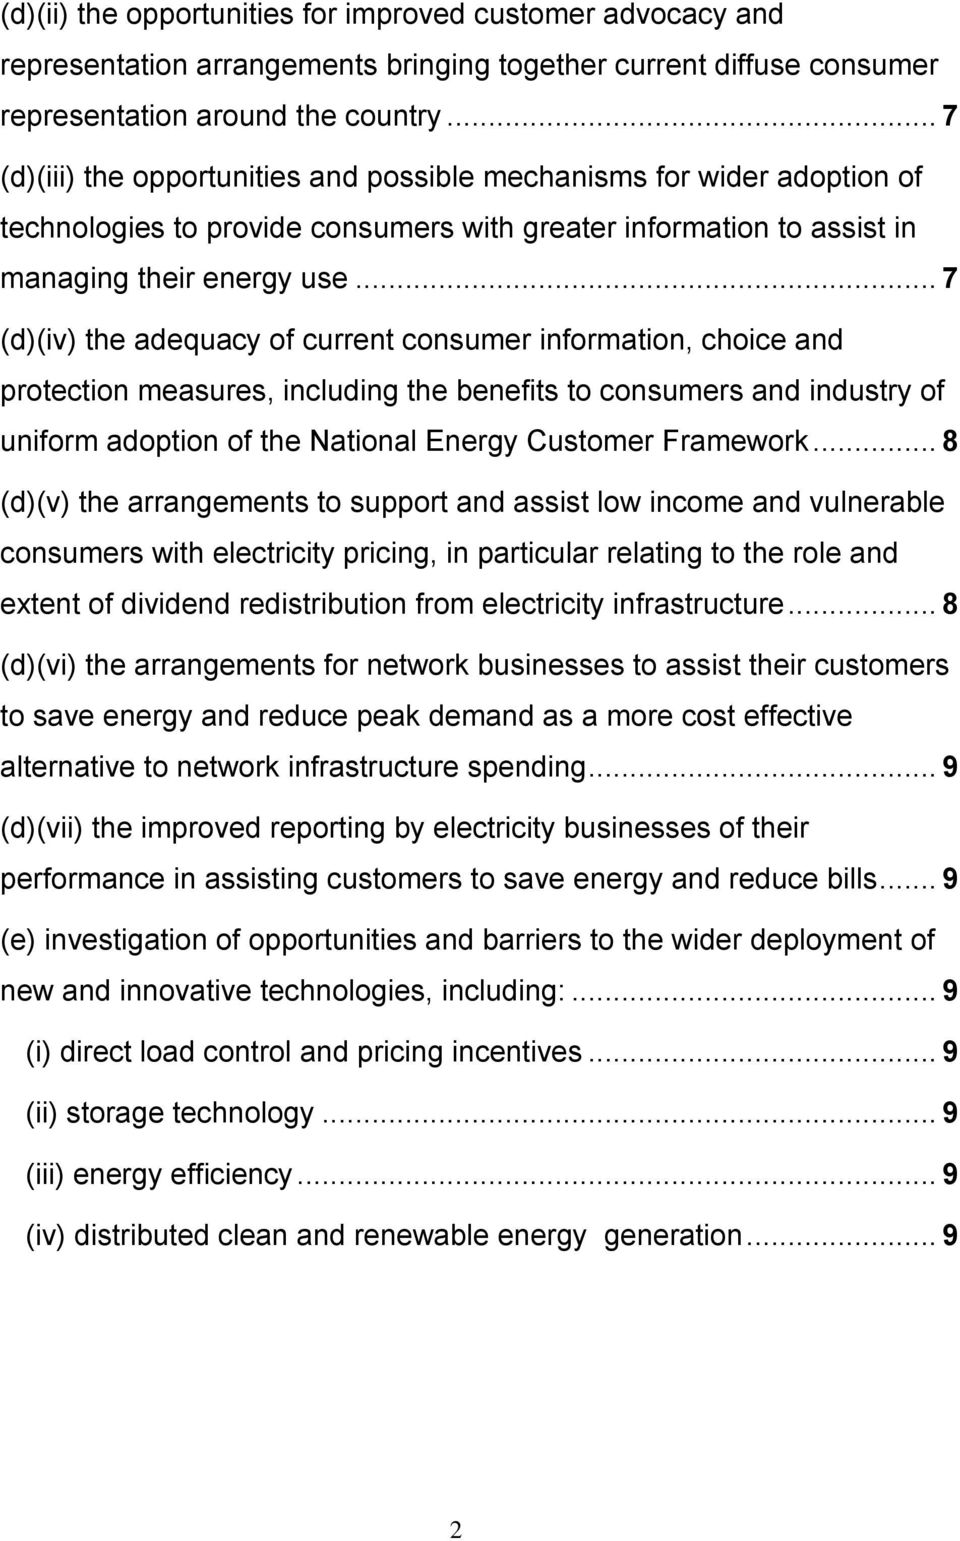 .. 7 (d)(iv) the adequacy of current consumer information, choice and protection measures, including the benefits to consumers and industry of uniform adoption of the National Energy Customer Framework.